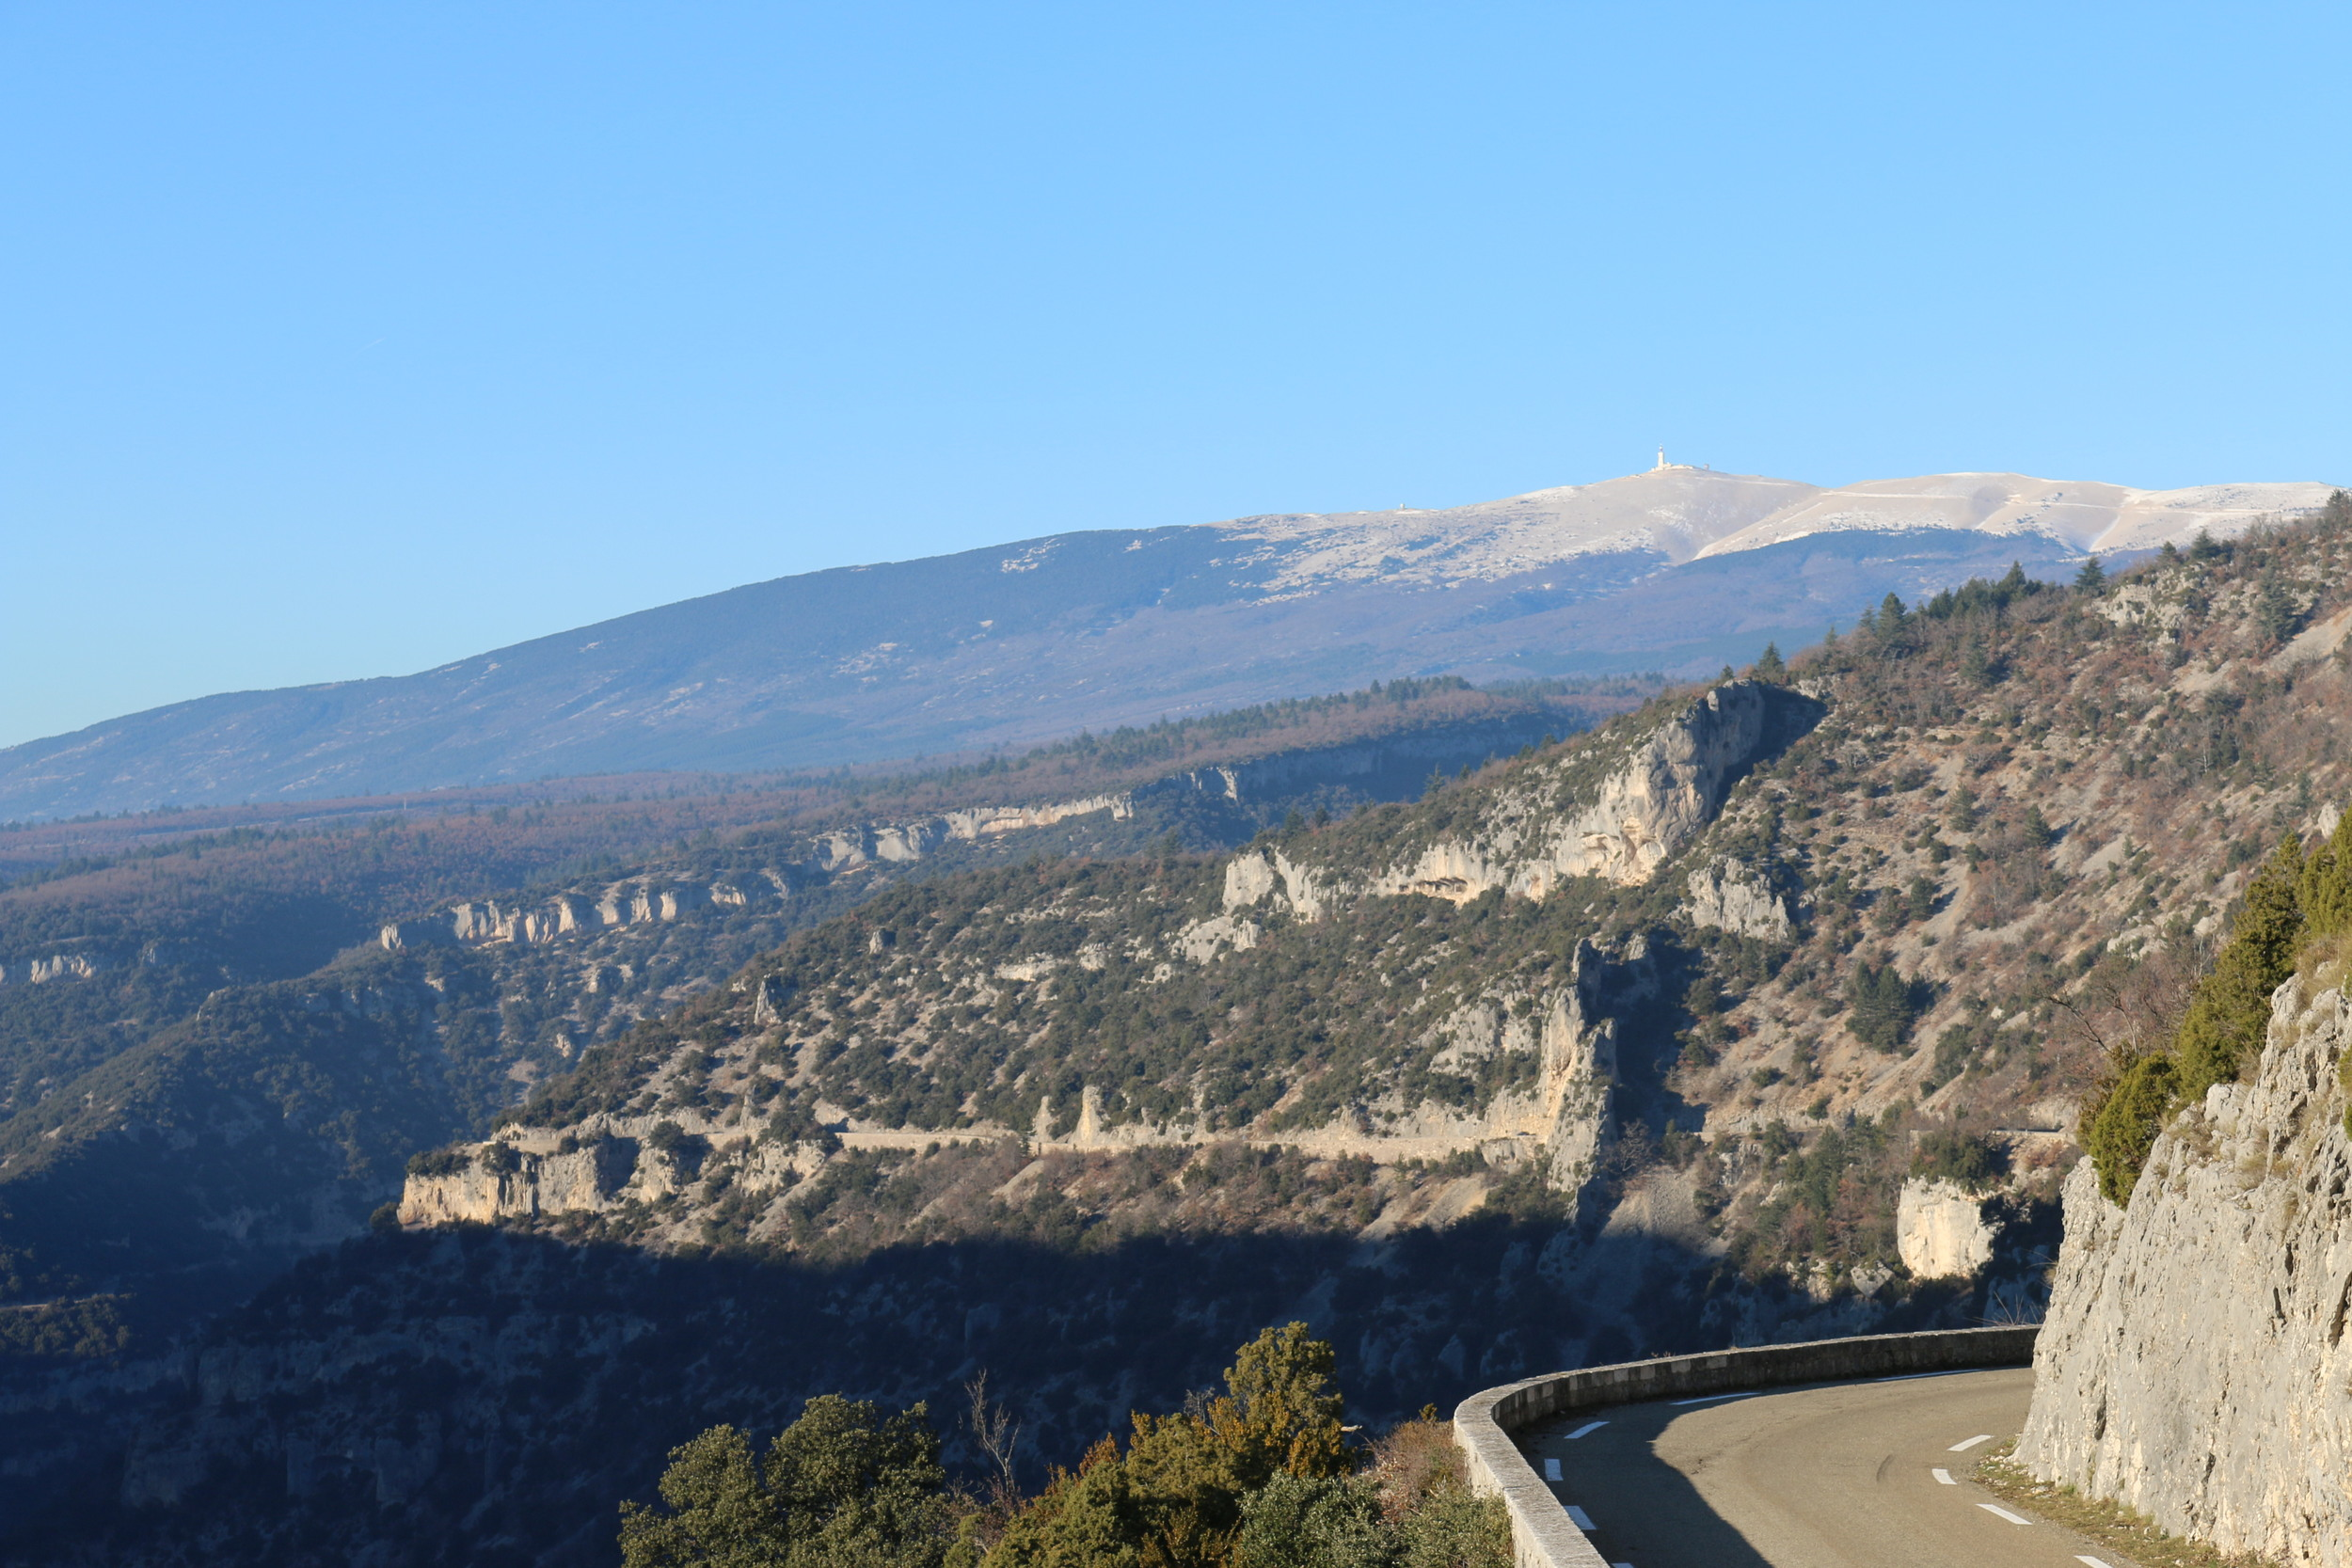 Mont Ventoux in the distance.